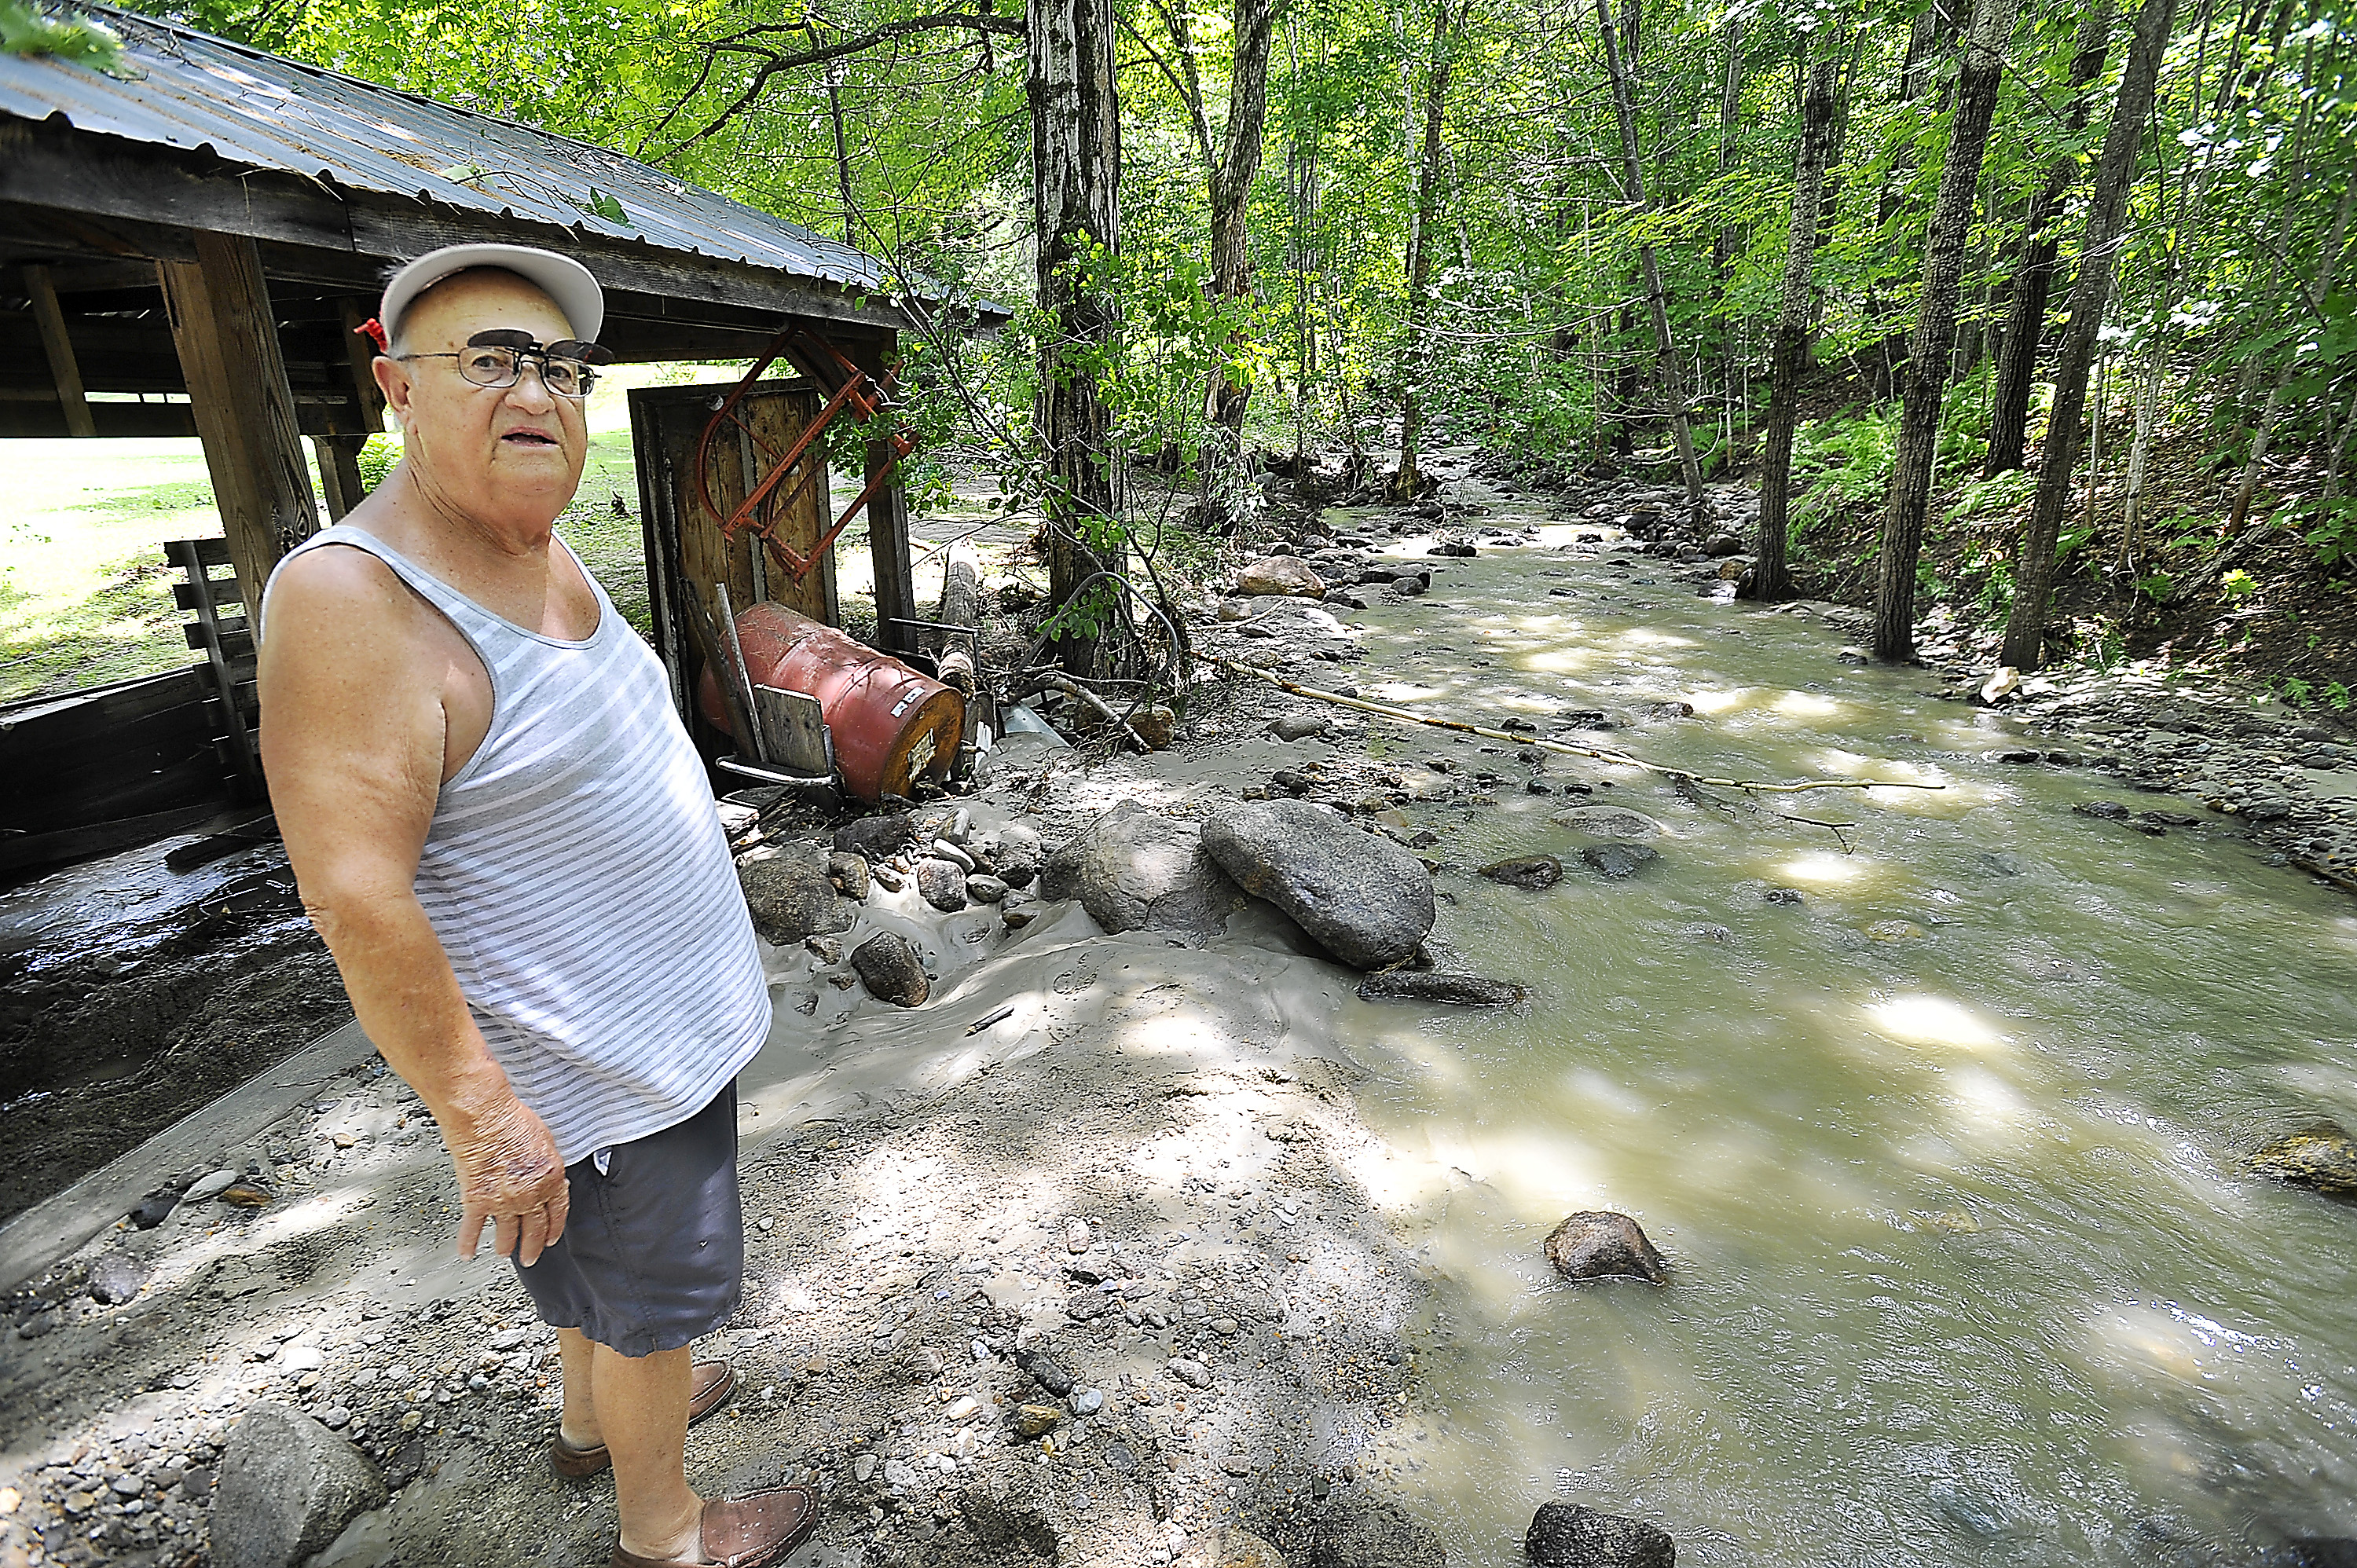 Resident Ted Orino stands by the brook that changed direction as it filled with rocks and soil in Rumford during heavy rains Wednesday night. He calculated 5 inches of rain fell in two hours at his home weather station.